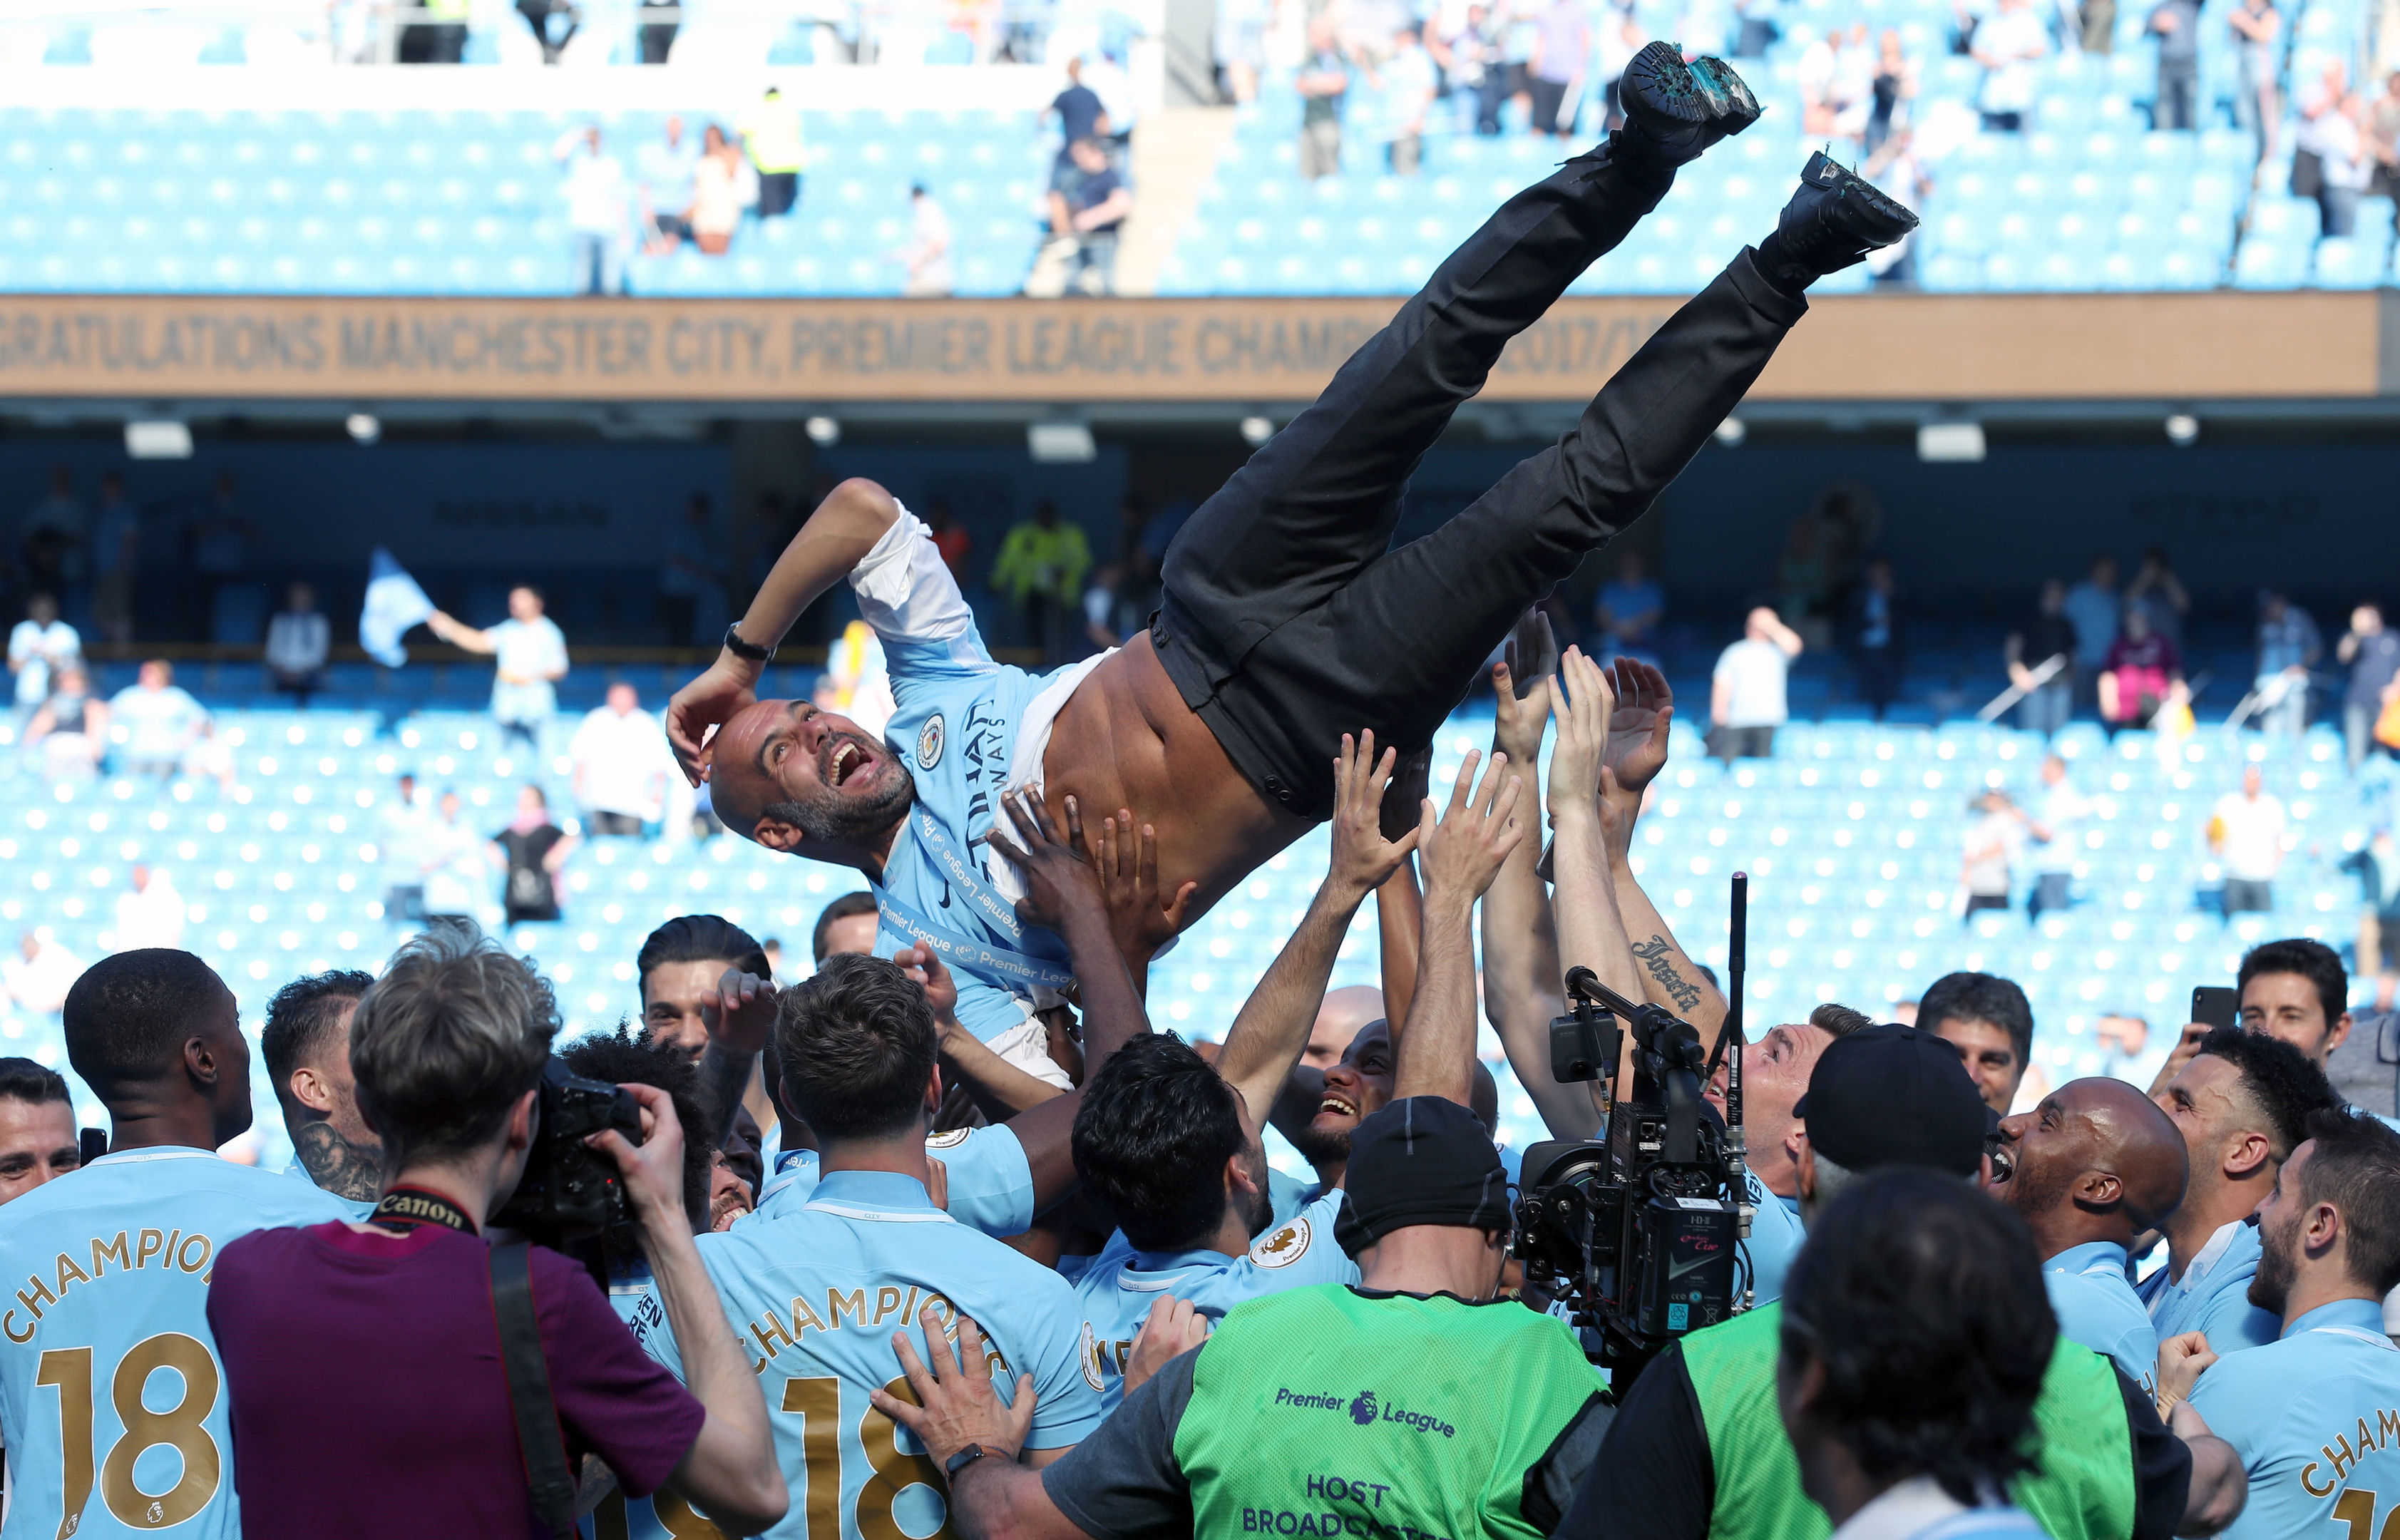 Manchester City manager Pep Guardiola is thrown up into the air by players during the Premier League trophy celebrations (Martin Rickett/PA Wire)